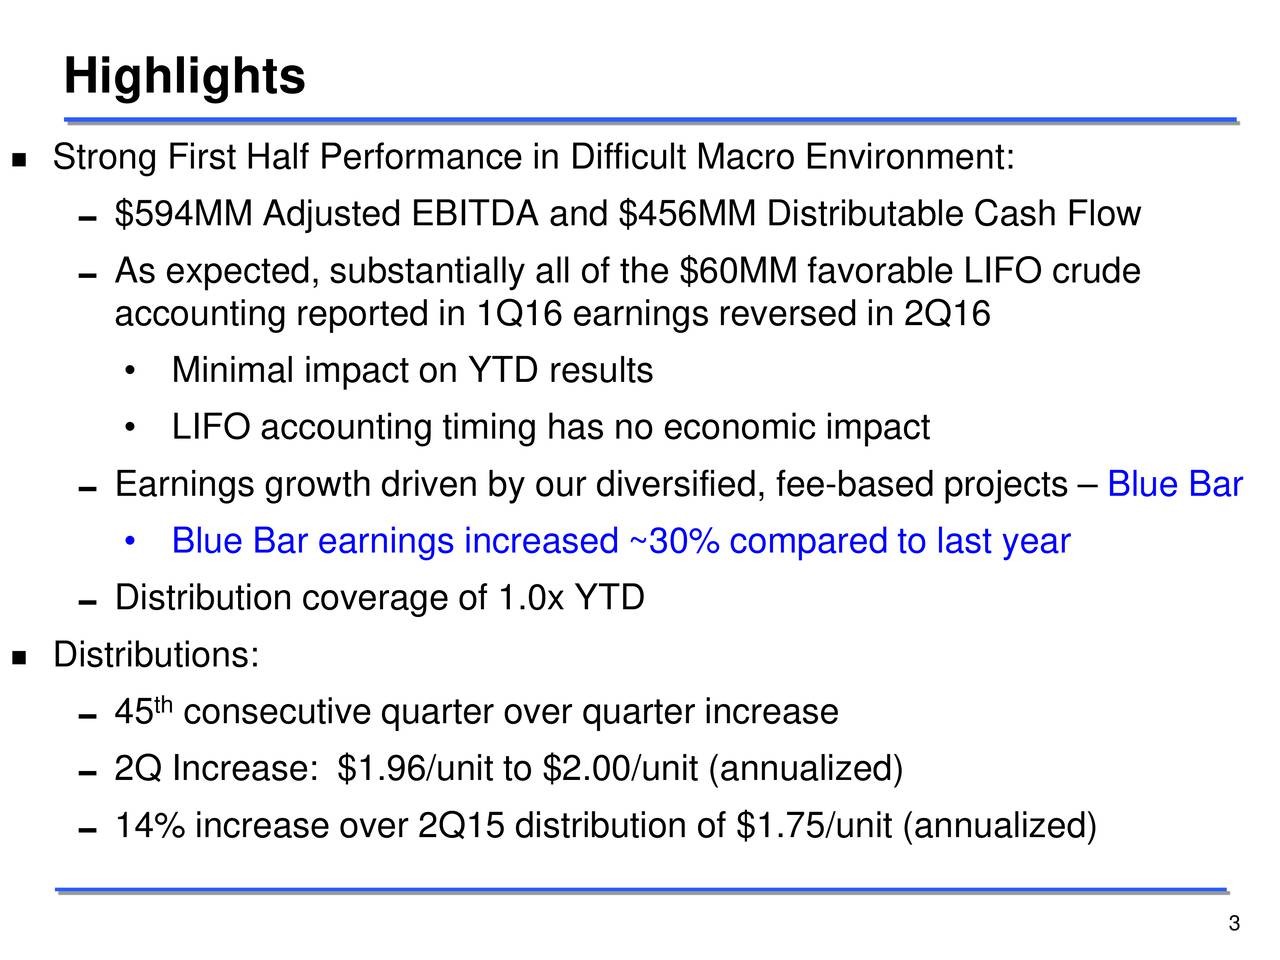 Strong First Half Performance in Difficult Macro Environment: $594MM Adjusted EBITDA and $456MM Distributable Cash Flow As expected, substantially all of the $60MM favorable LIFO crude accounting reported in 1Q16 earnings reversed in 2Q16 Minimal impact on YTD results LIFO accounting timing has no economic impact Earnings growth driven by our diversified, fee-based projects  Blue Bar Blue Bar earnings increased ~30% compared to last year Distribution coverage of 1.0x YTD Distributions: 45 consecutive quarter over quarter increase 2Q Increase: $1.96/unit to $2.00/unit (annualized) 14% increase over 2Q15 distribution of $1.75/unit (annualized) 3